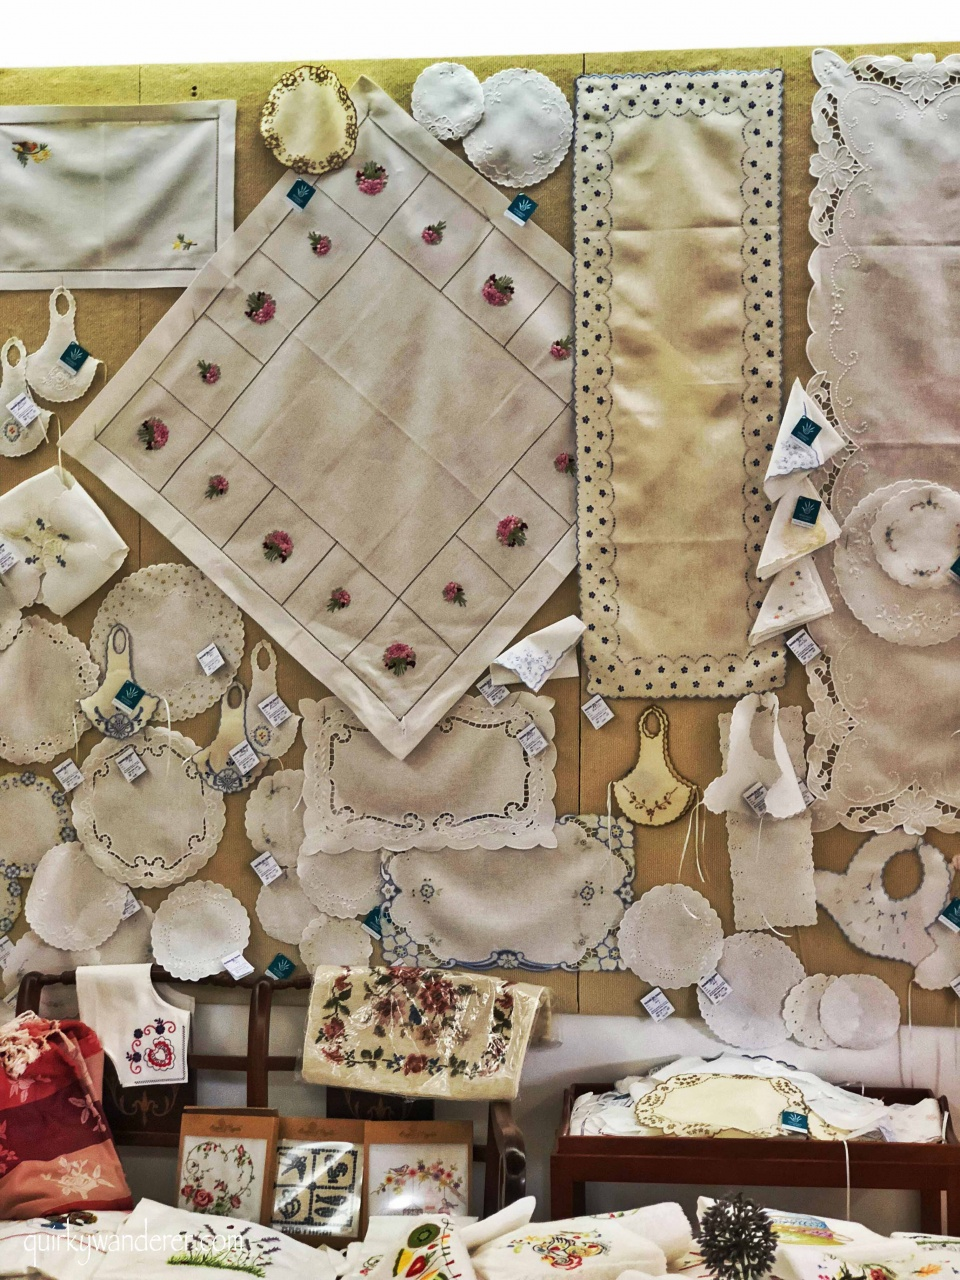 Shopping in Portugal: embroidery